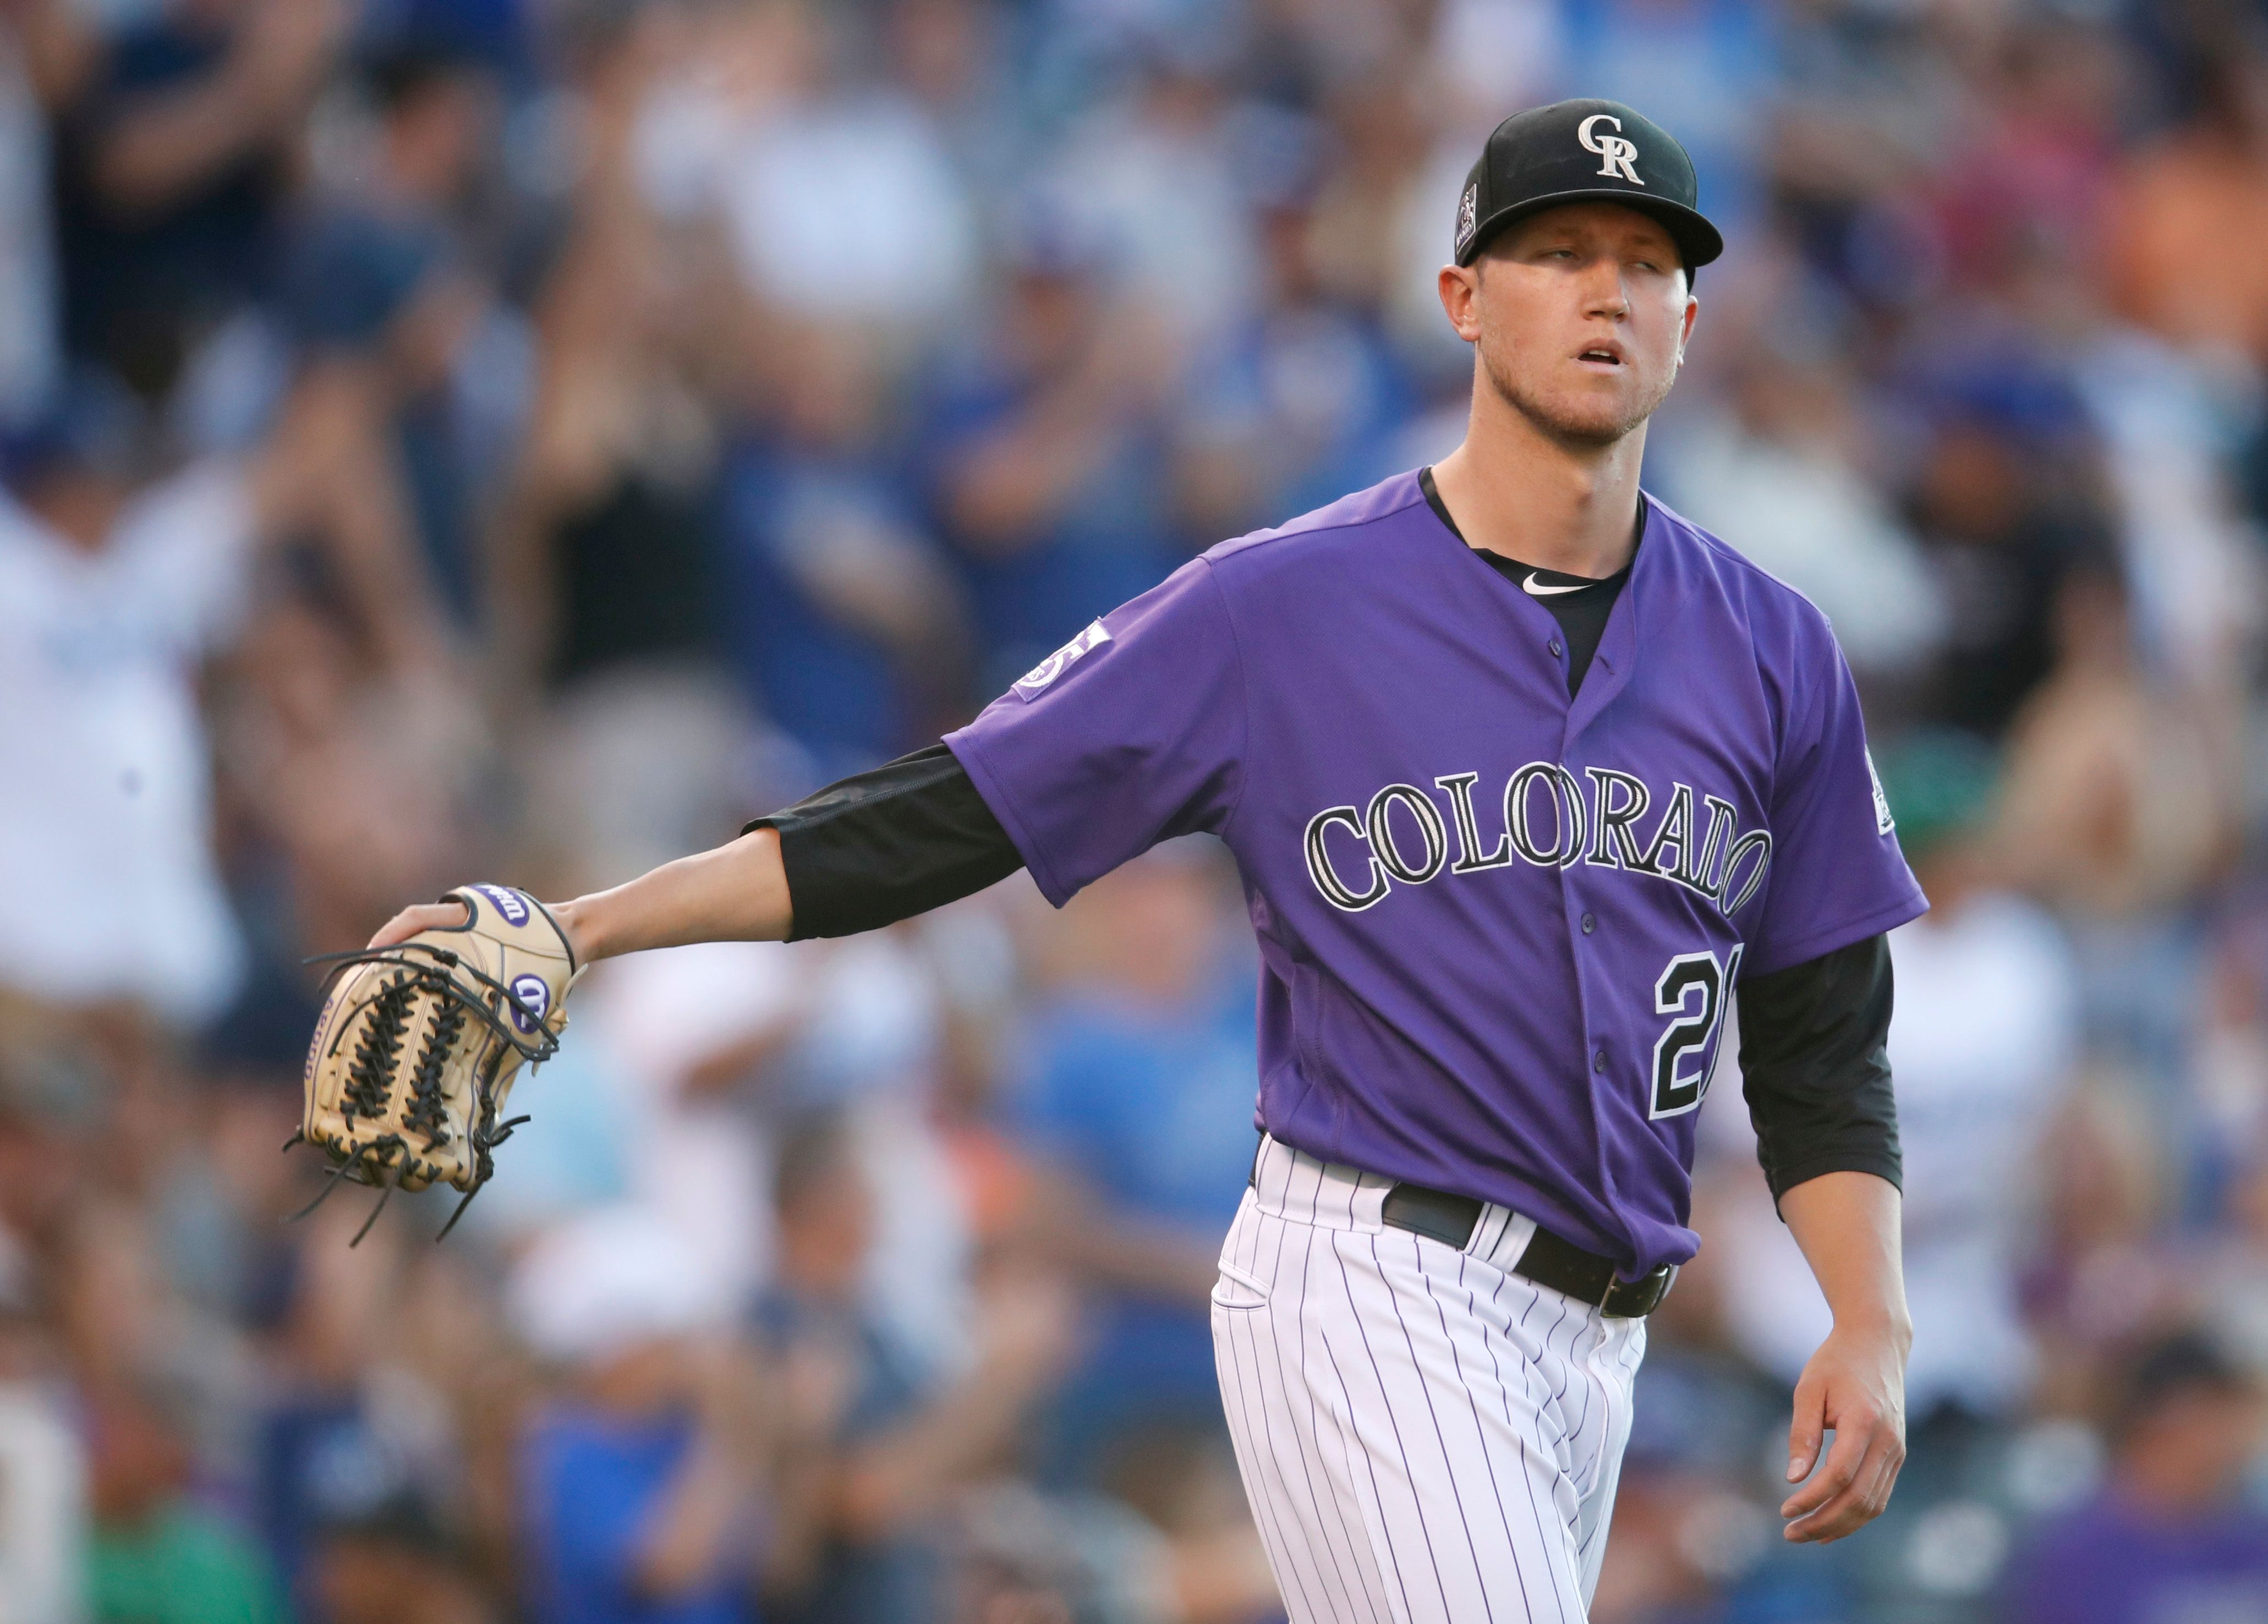 McMahon's 3-run homer lifts Rockies past Dodgers 3-2